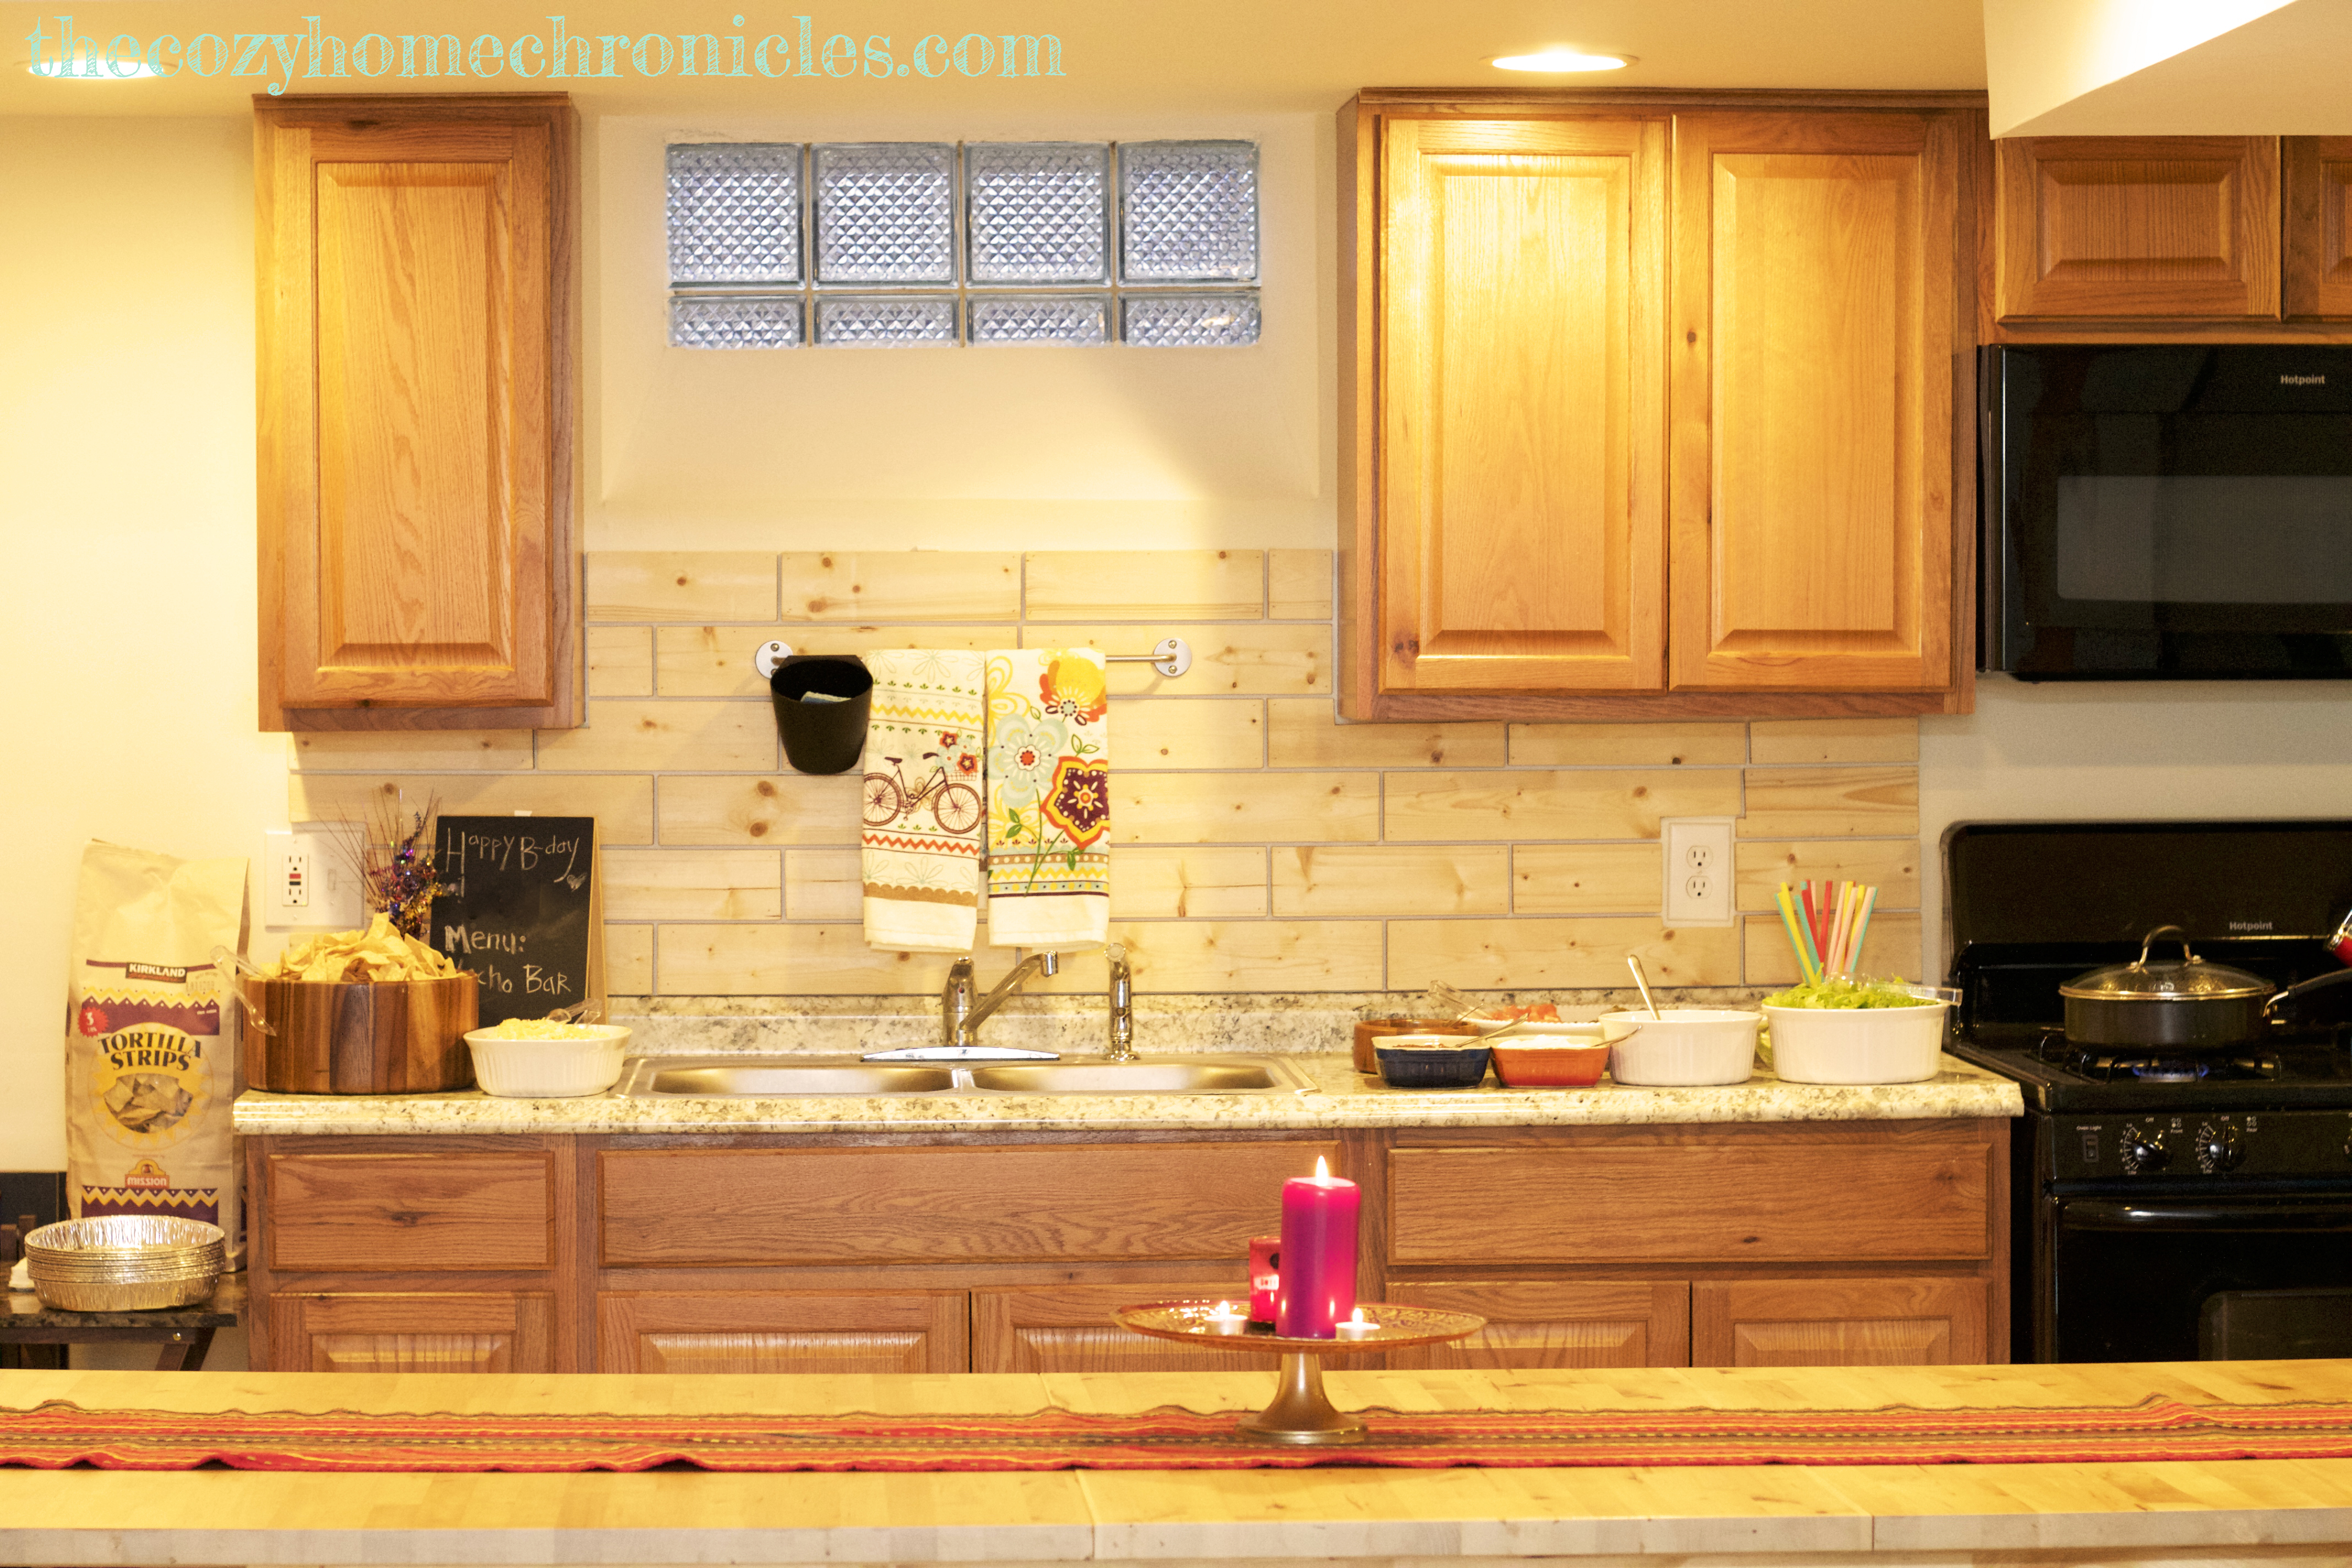 install a kitchenette in less than 4 hours the cozy home chronicles Kitchenette Units install a kitchenette in less than 4 hours